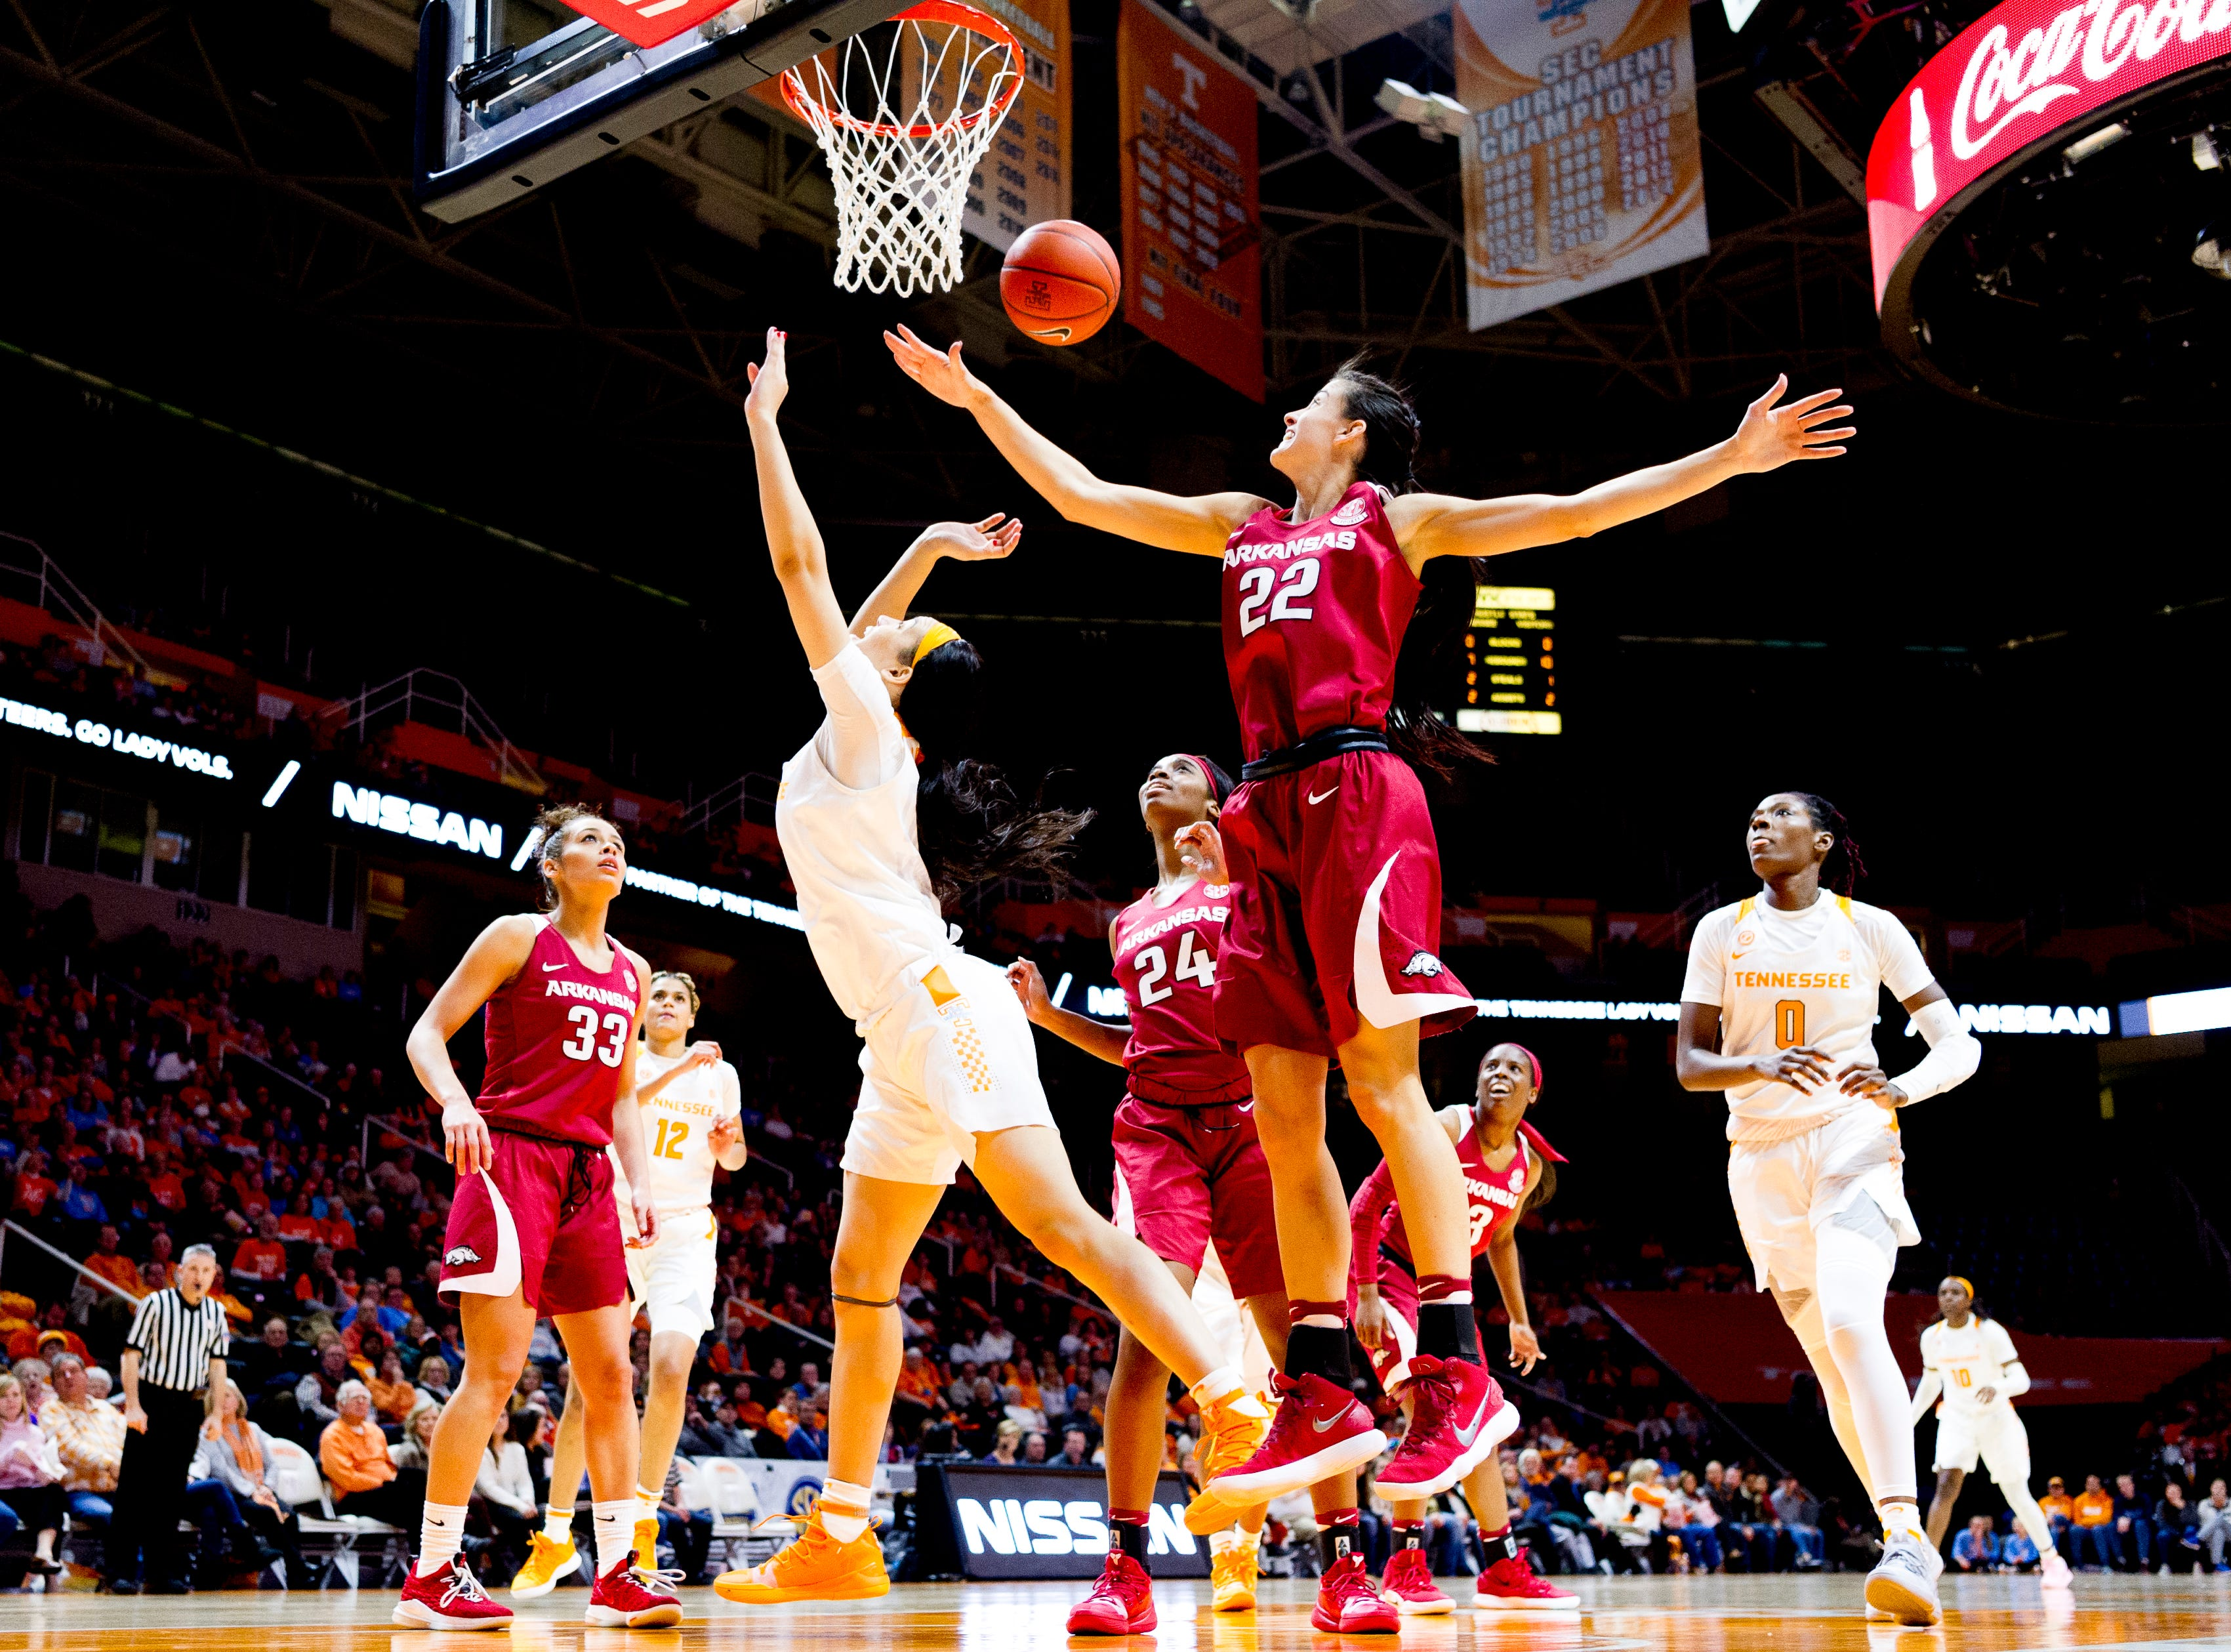 Tennessee forward Mimi Collins (4) tries to shoot a ball as Arkansas guard/forward Bailey Zimmerman (22) defends during a game between Tennessee and Arkansas at Thompson-Boling Arena in , Tennessee on Monday, January 21, 2019.